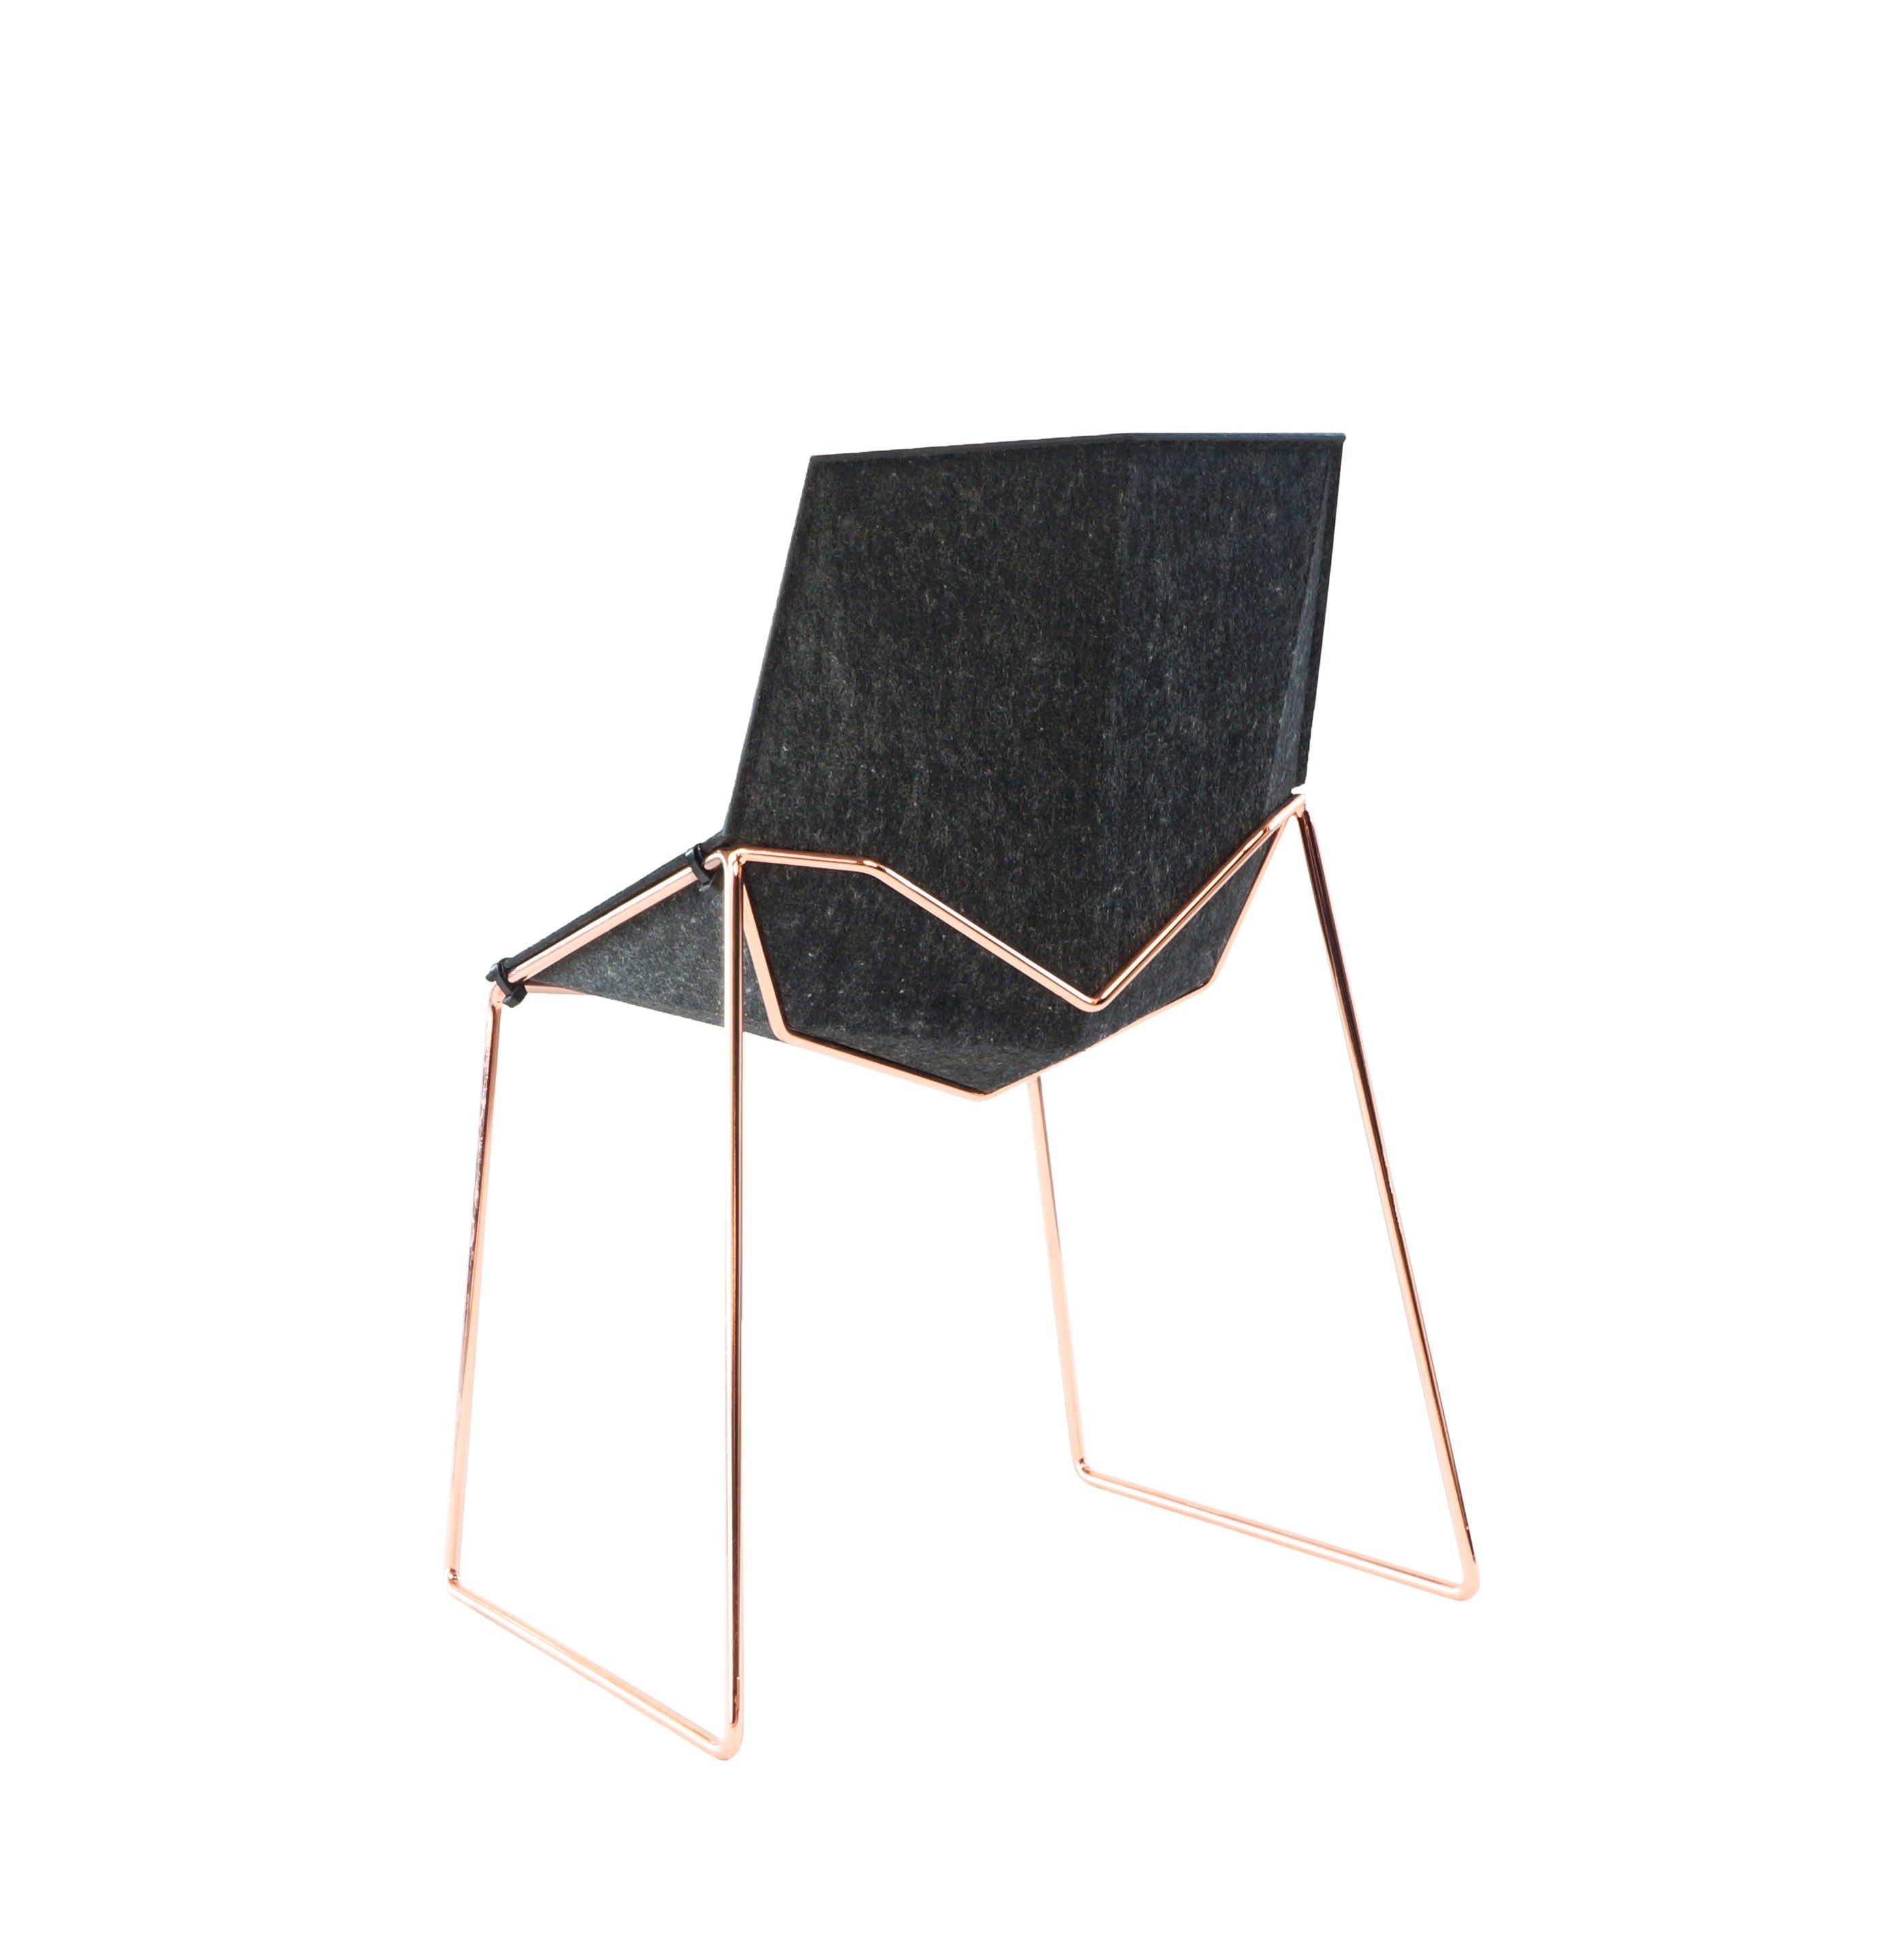 Best Kitchen Gallery: Recycled Felt Chair Nico Less Beatnikchair Furniture Design of Chairs For Less  on rachelxblog.com